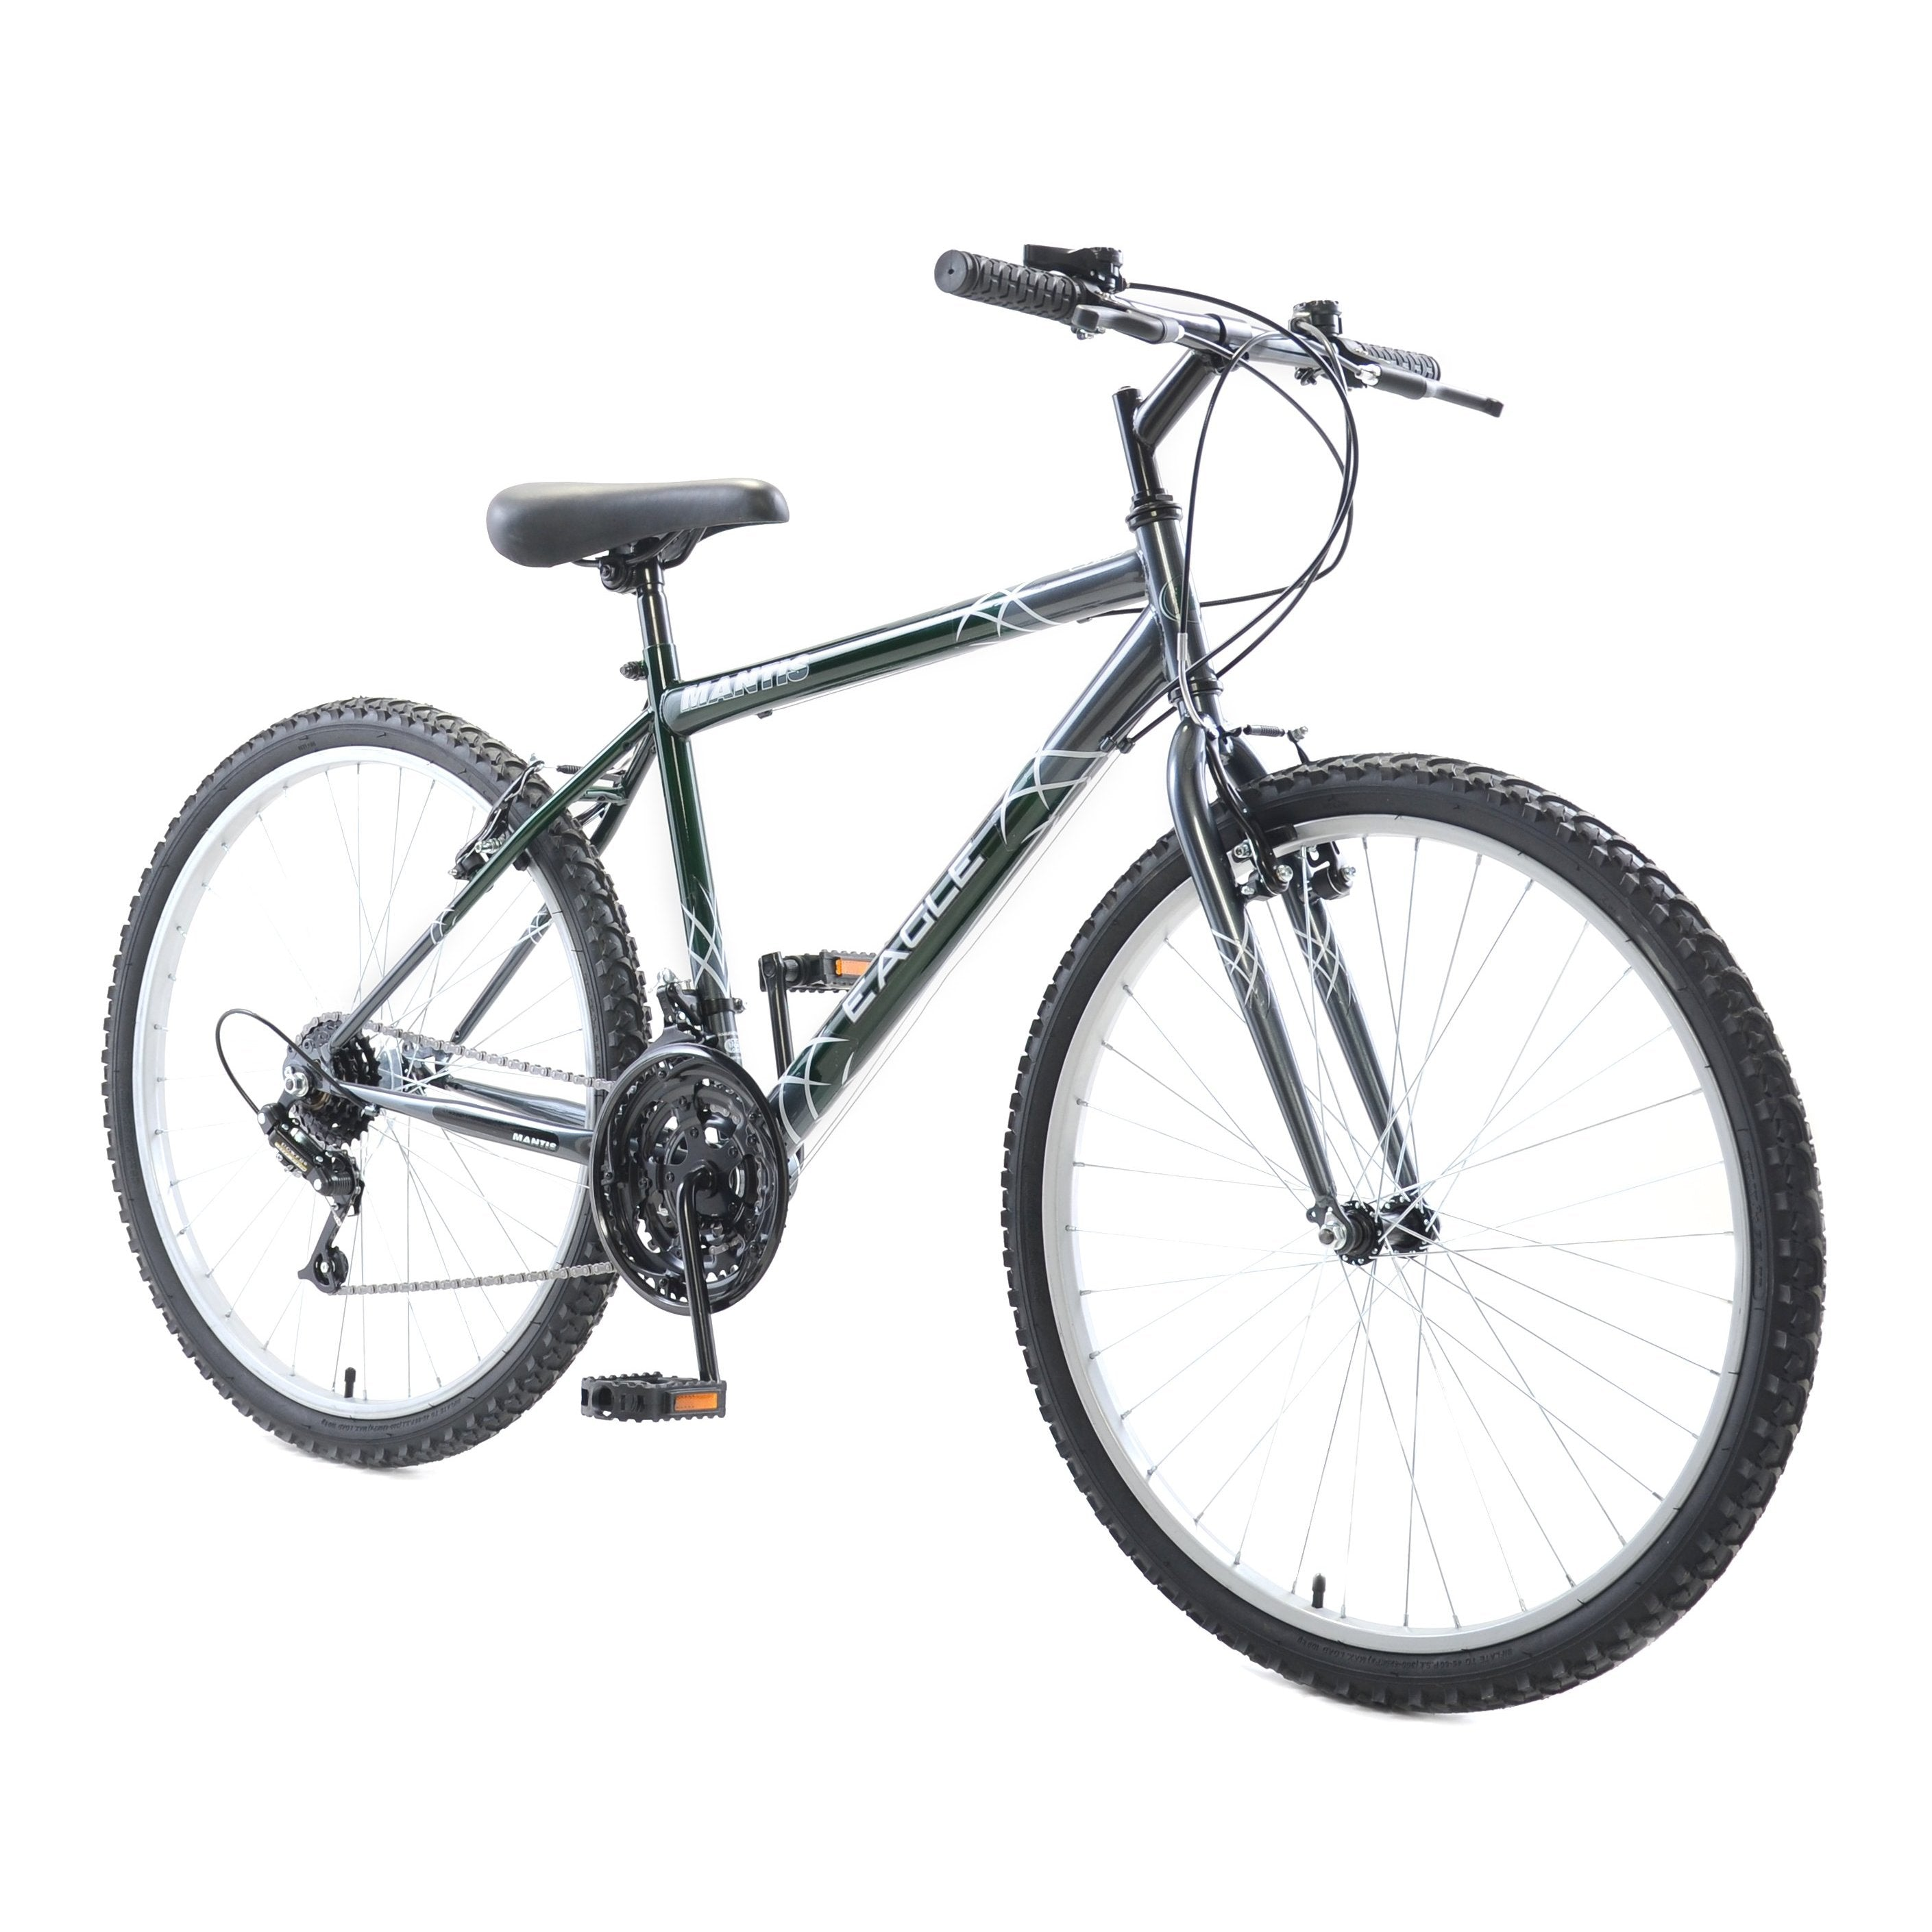 Mantis Eagle 15 Speed 26-Inch Rigid Mountain Bicycle